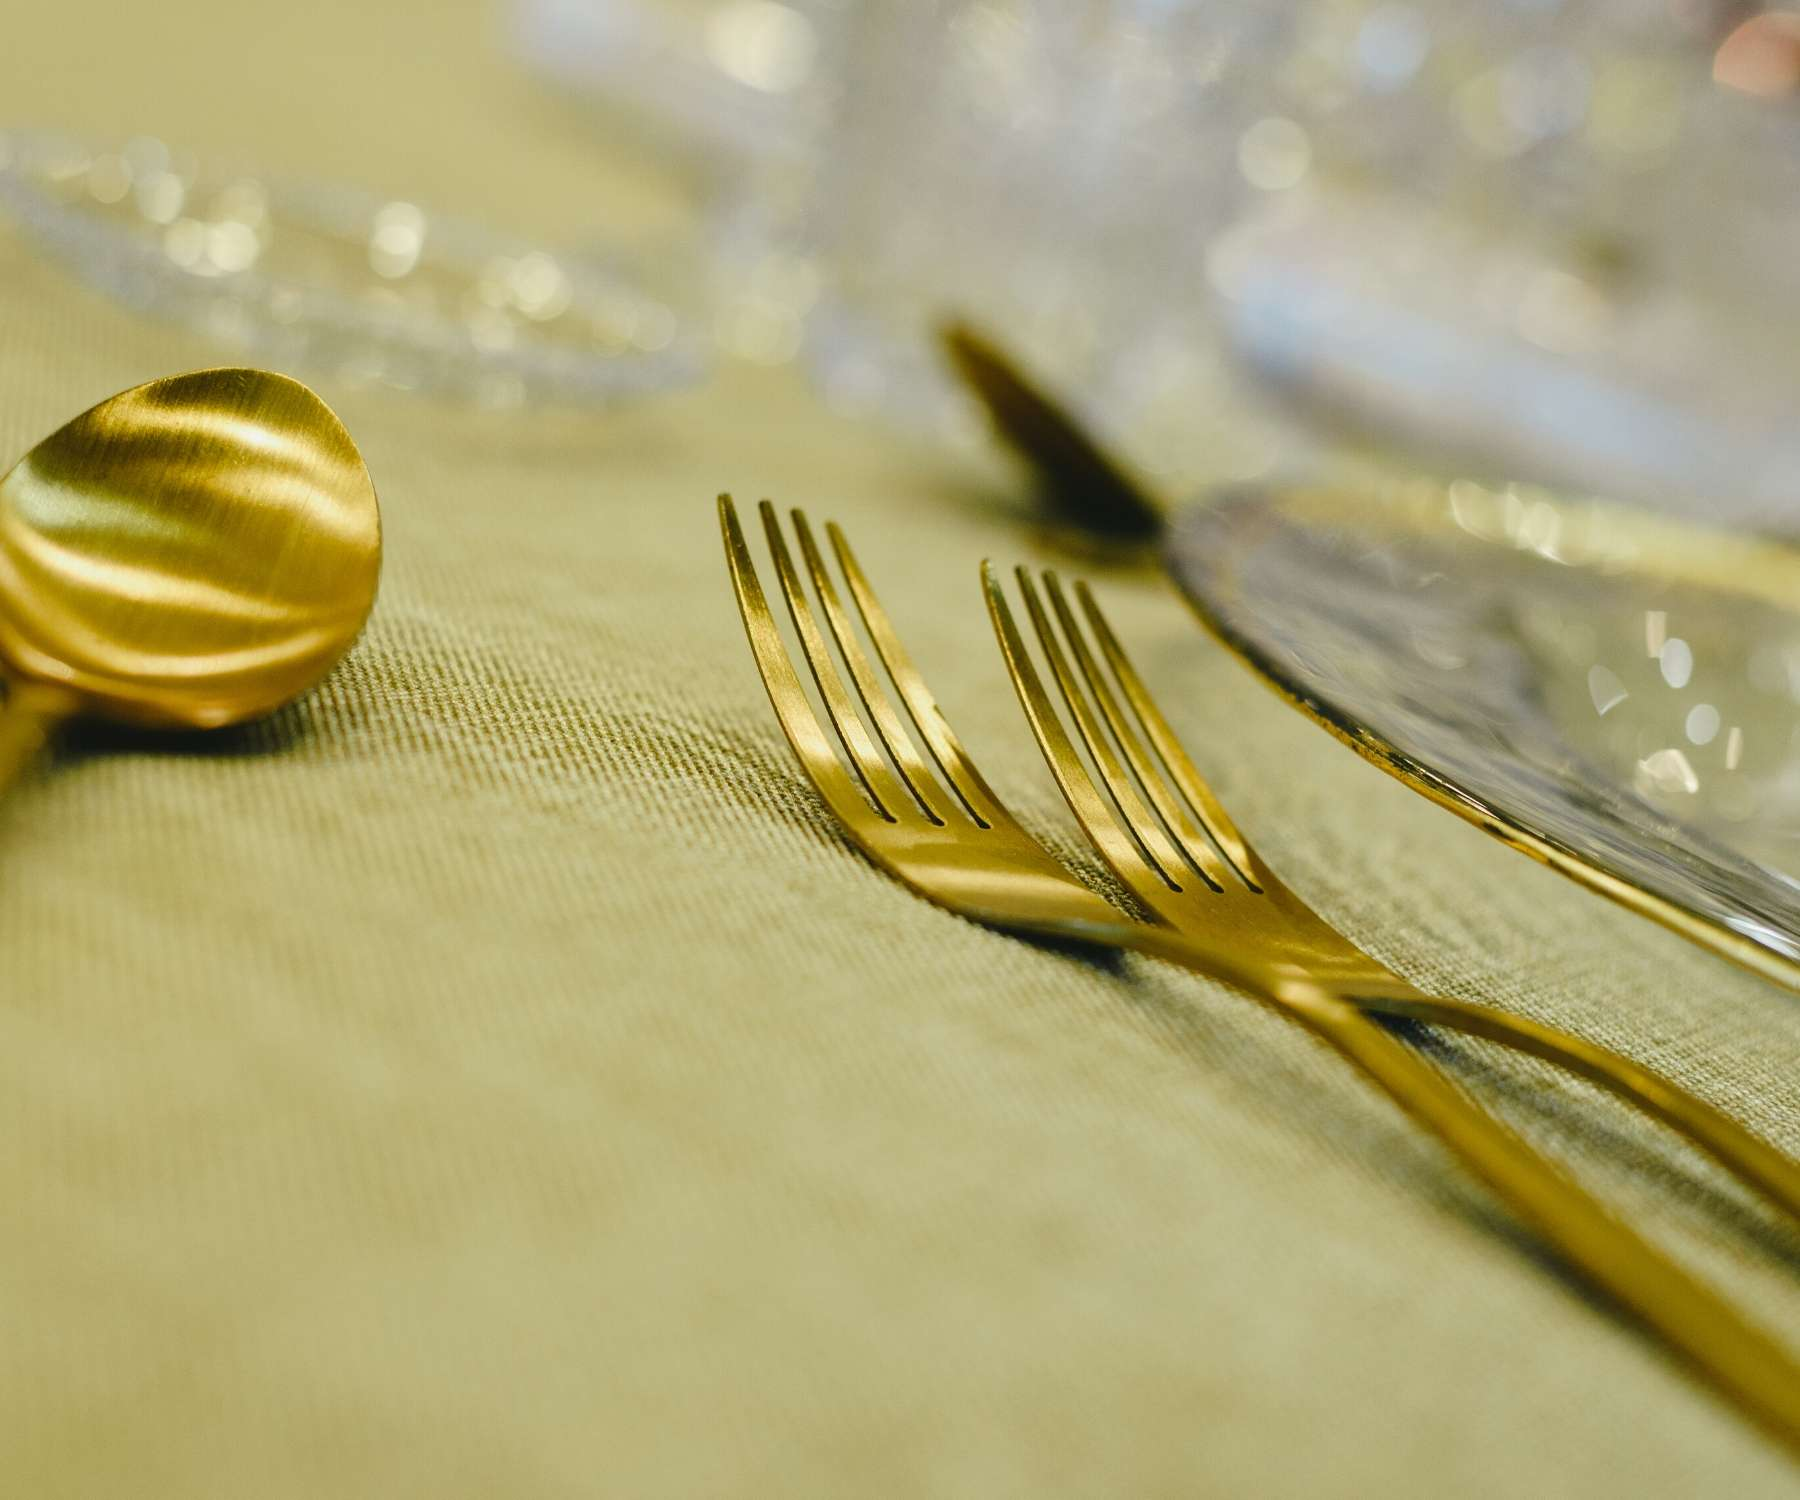 gold cutlery on gold tablecloth